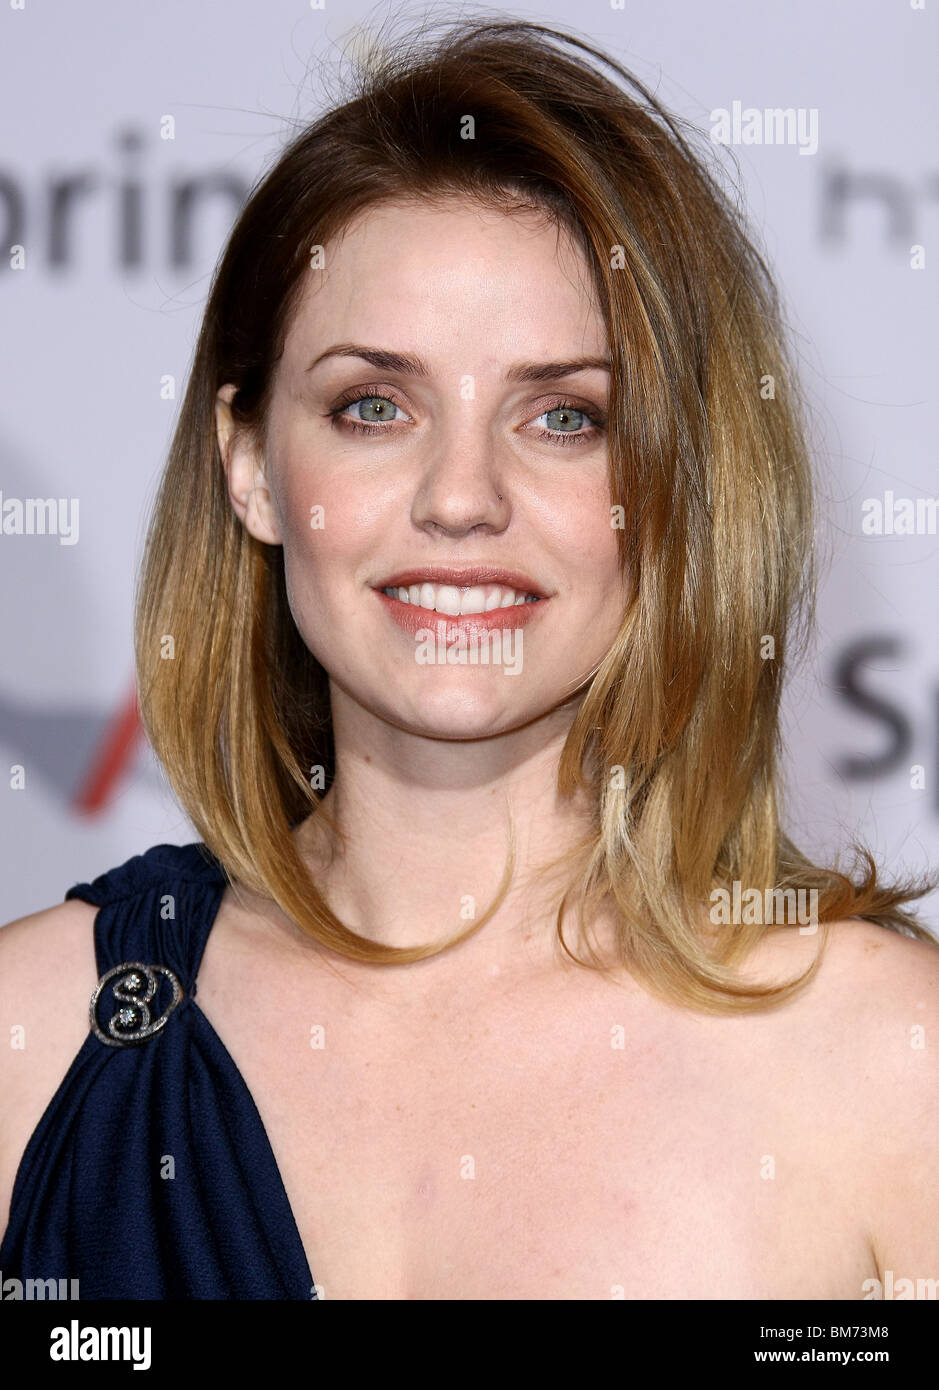 Snapchat Kelli Garner nude (77 photo), Ass, Cleavage, Boobs, swimsuit 2019